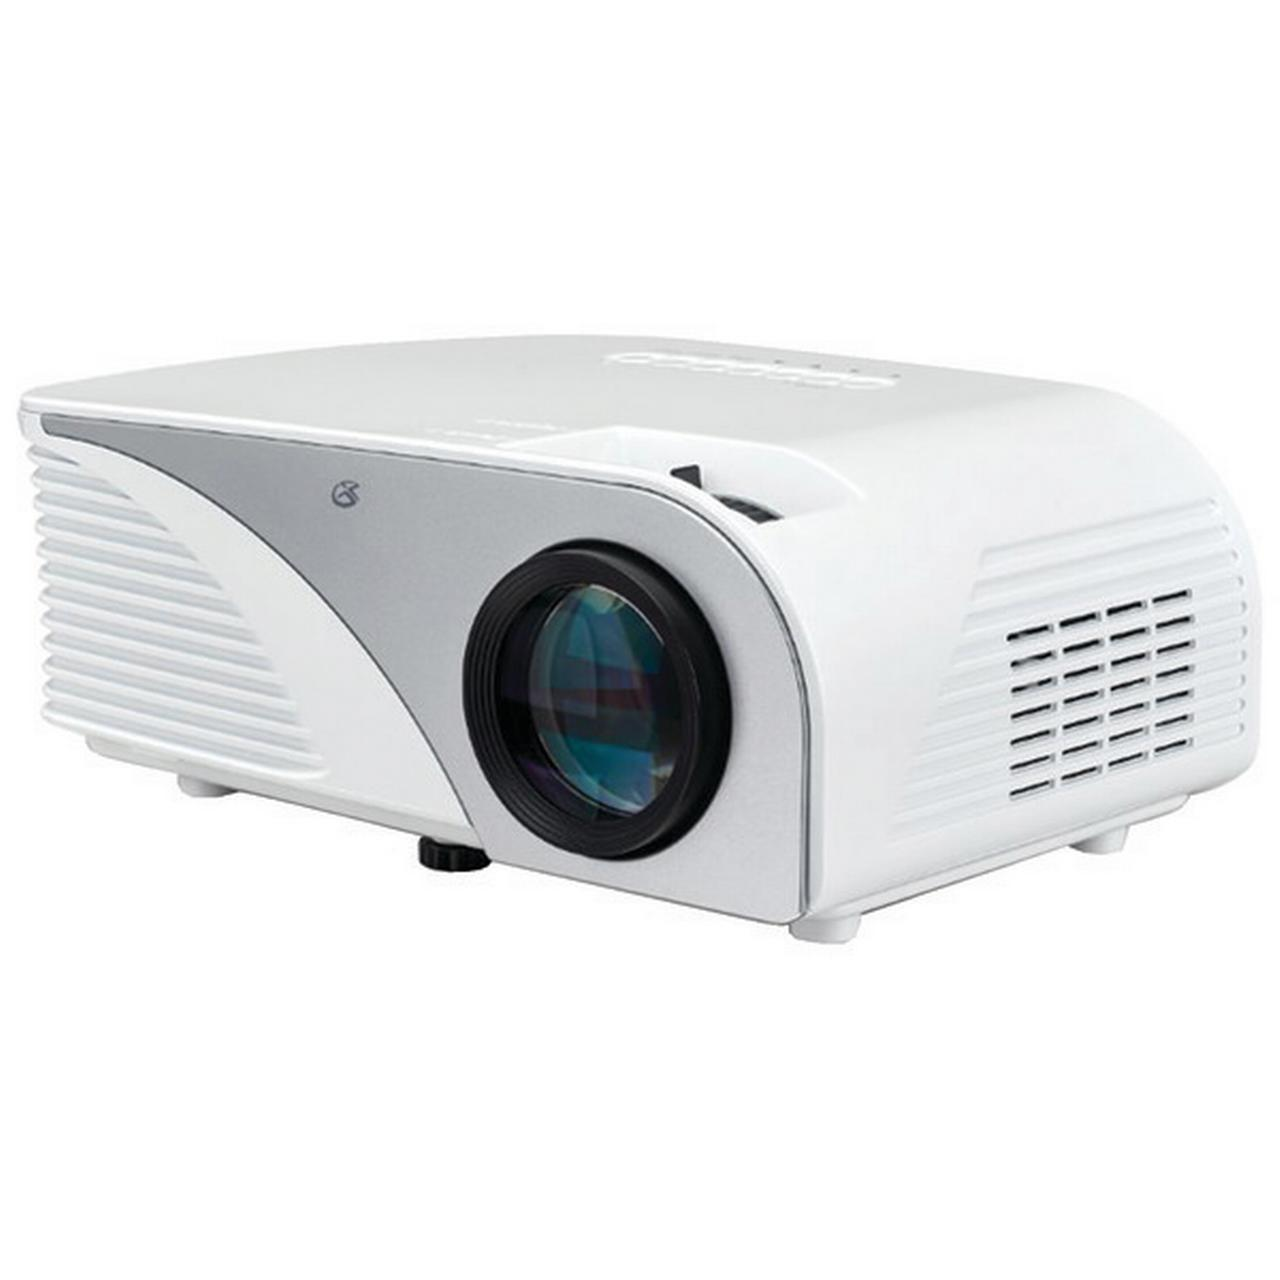 GPX(R) PJ308W PJ308W 1080p Mini Projector by